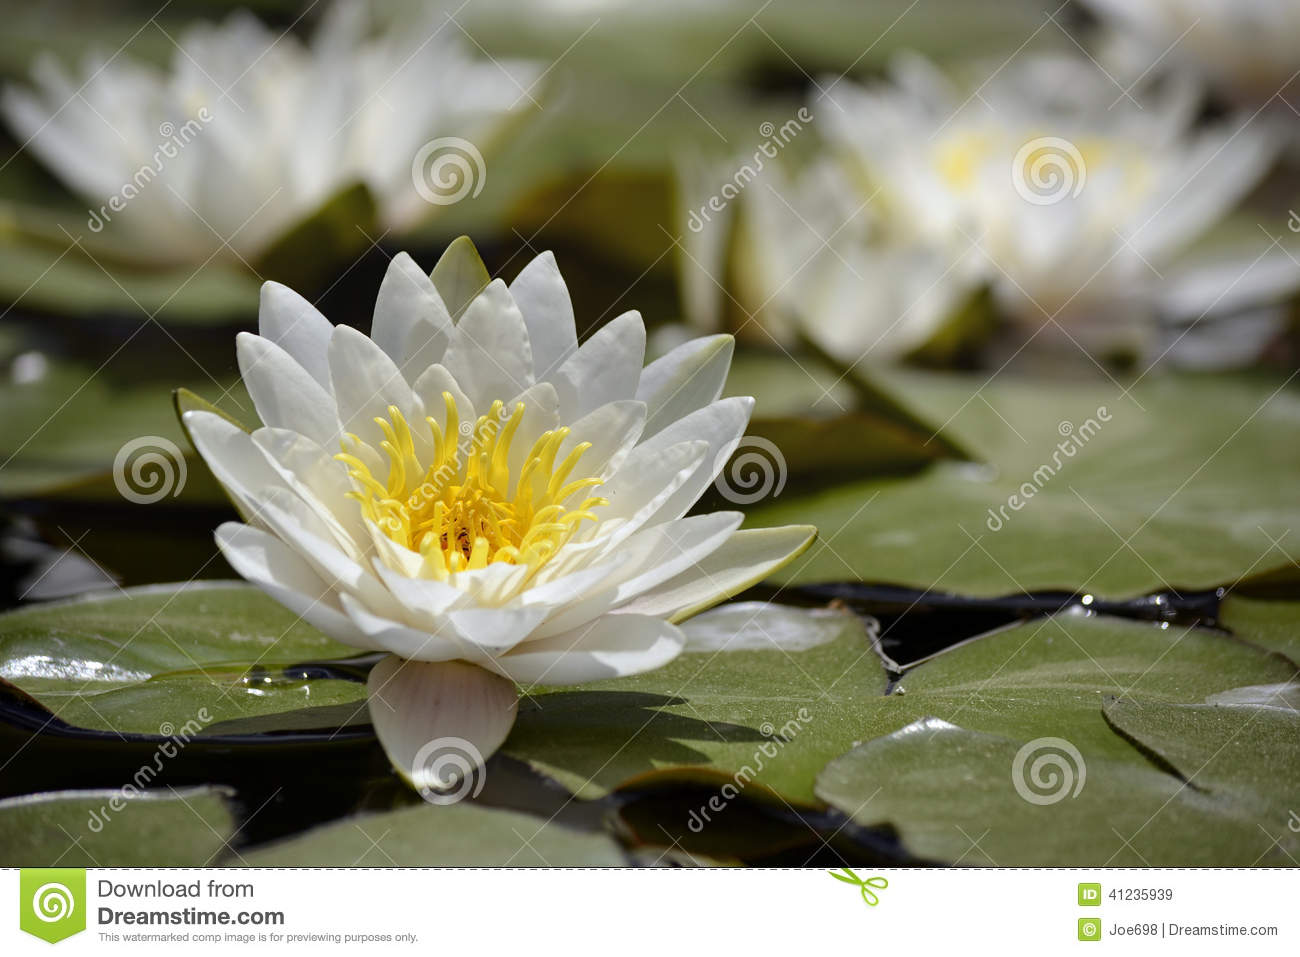 Flowering lilly pad on the water stock image image of flower a lilly pad with a large white flower in bloom on still waters izmirmasajfo